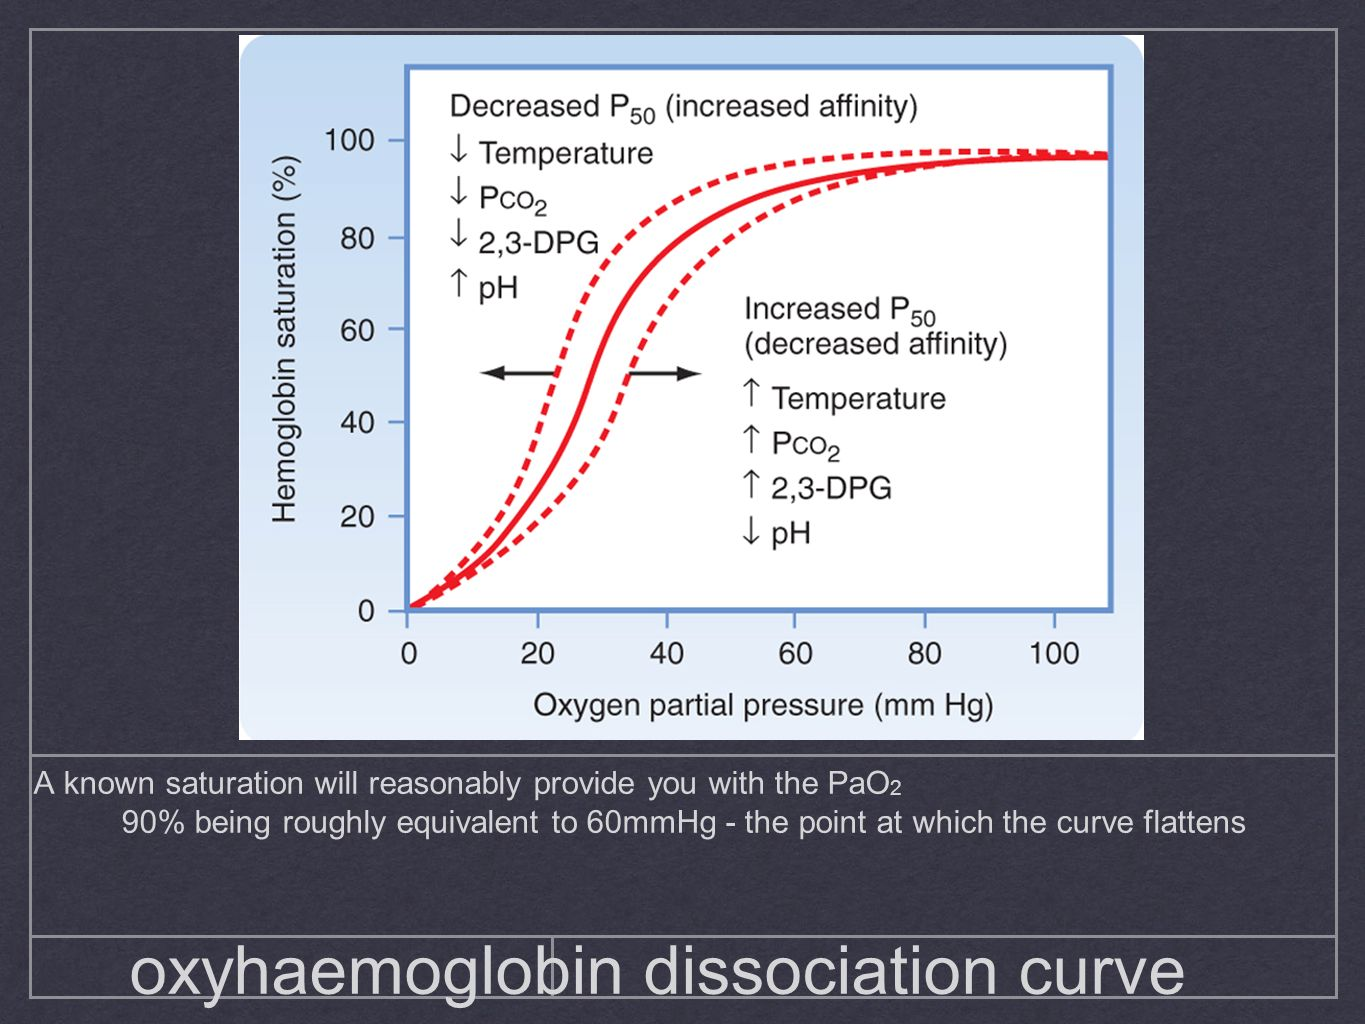 oxyhaemoglobin dissociation curve A known saturation will reasonably provide you with the PaO 2 90% being roughly equivalent to 60mmHg - the point at